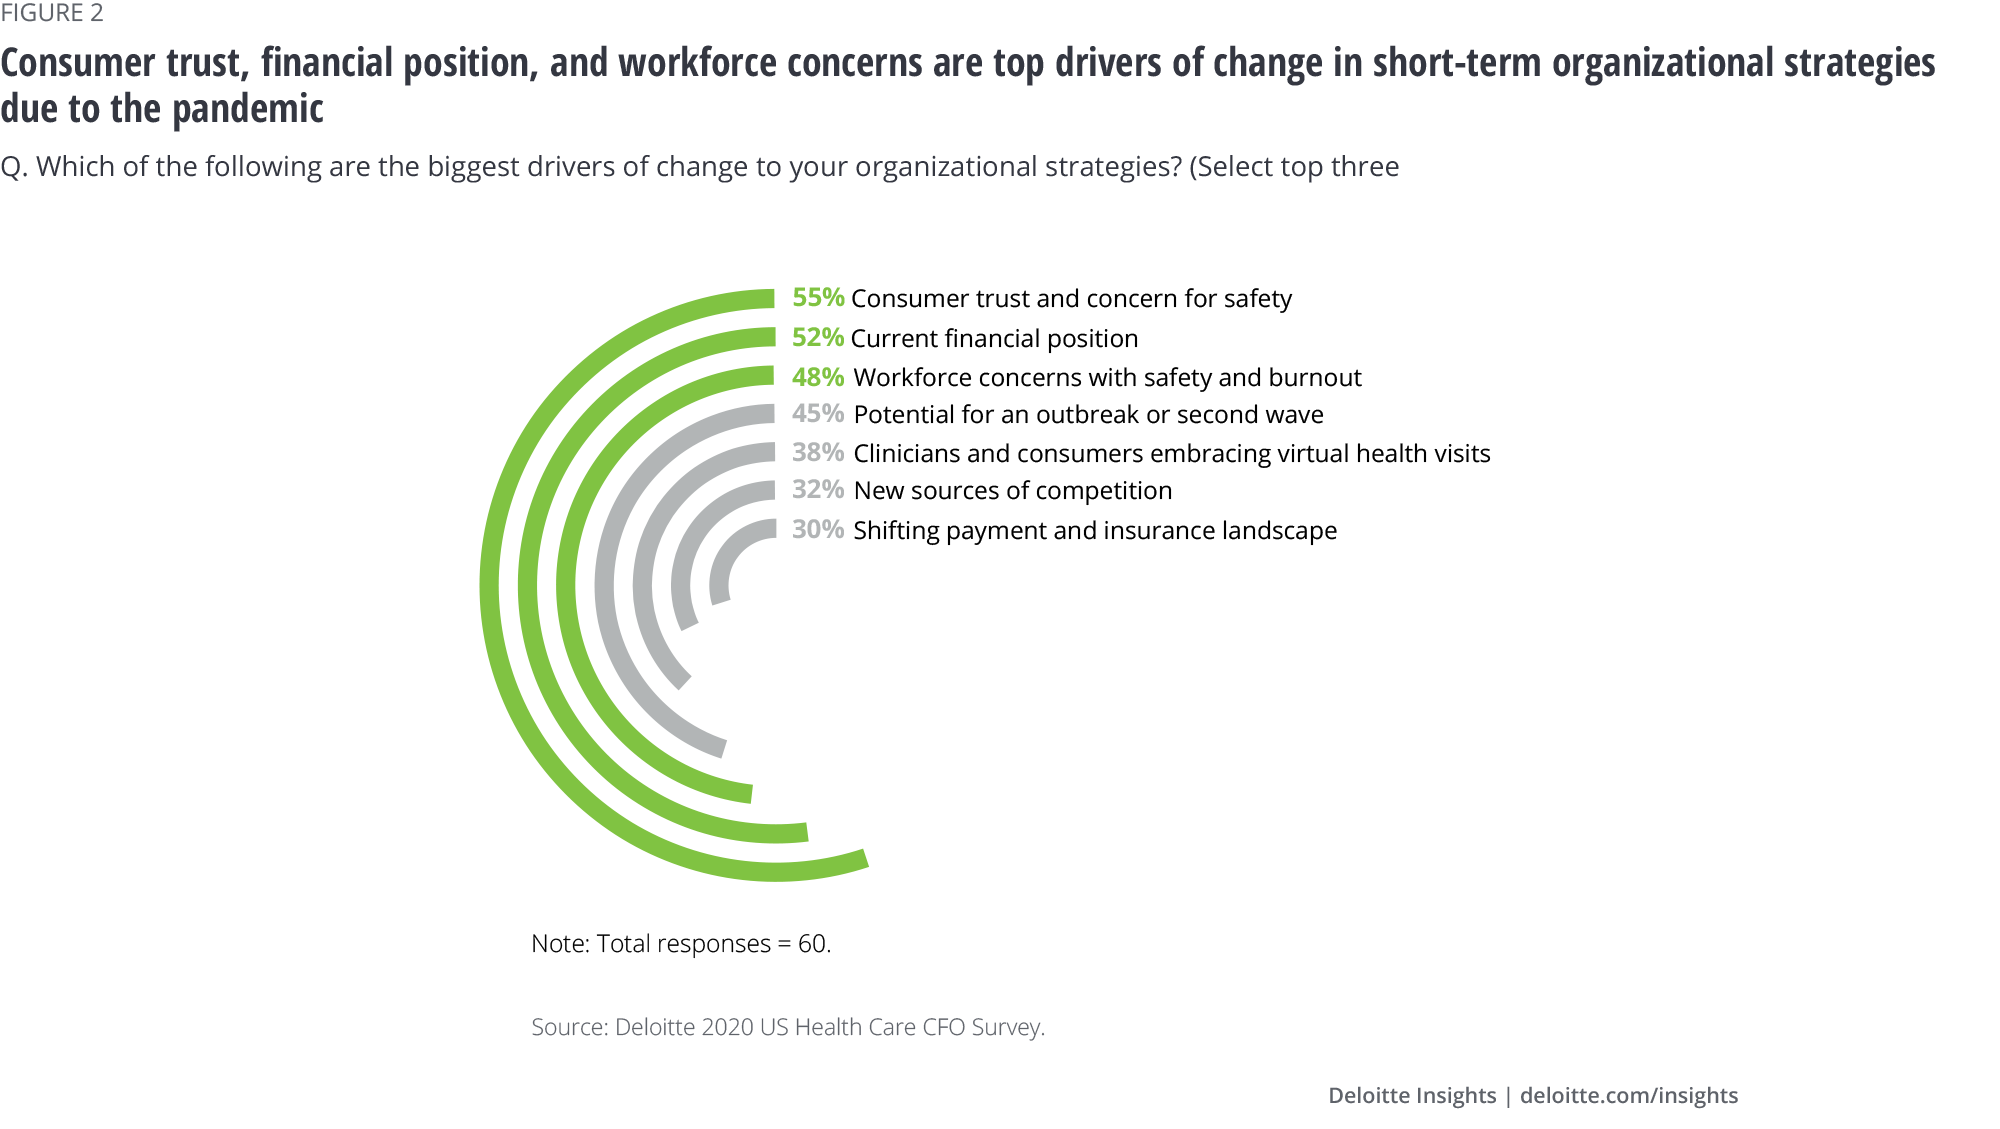 Consumer trust, financial position, and workforce concerns are top drivers of change in short-term organizational strategies due to the pandemic